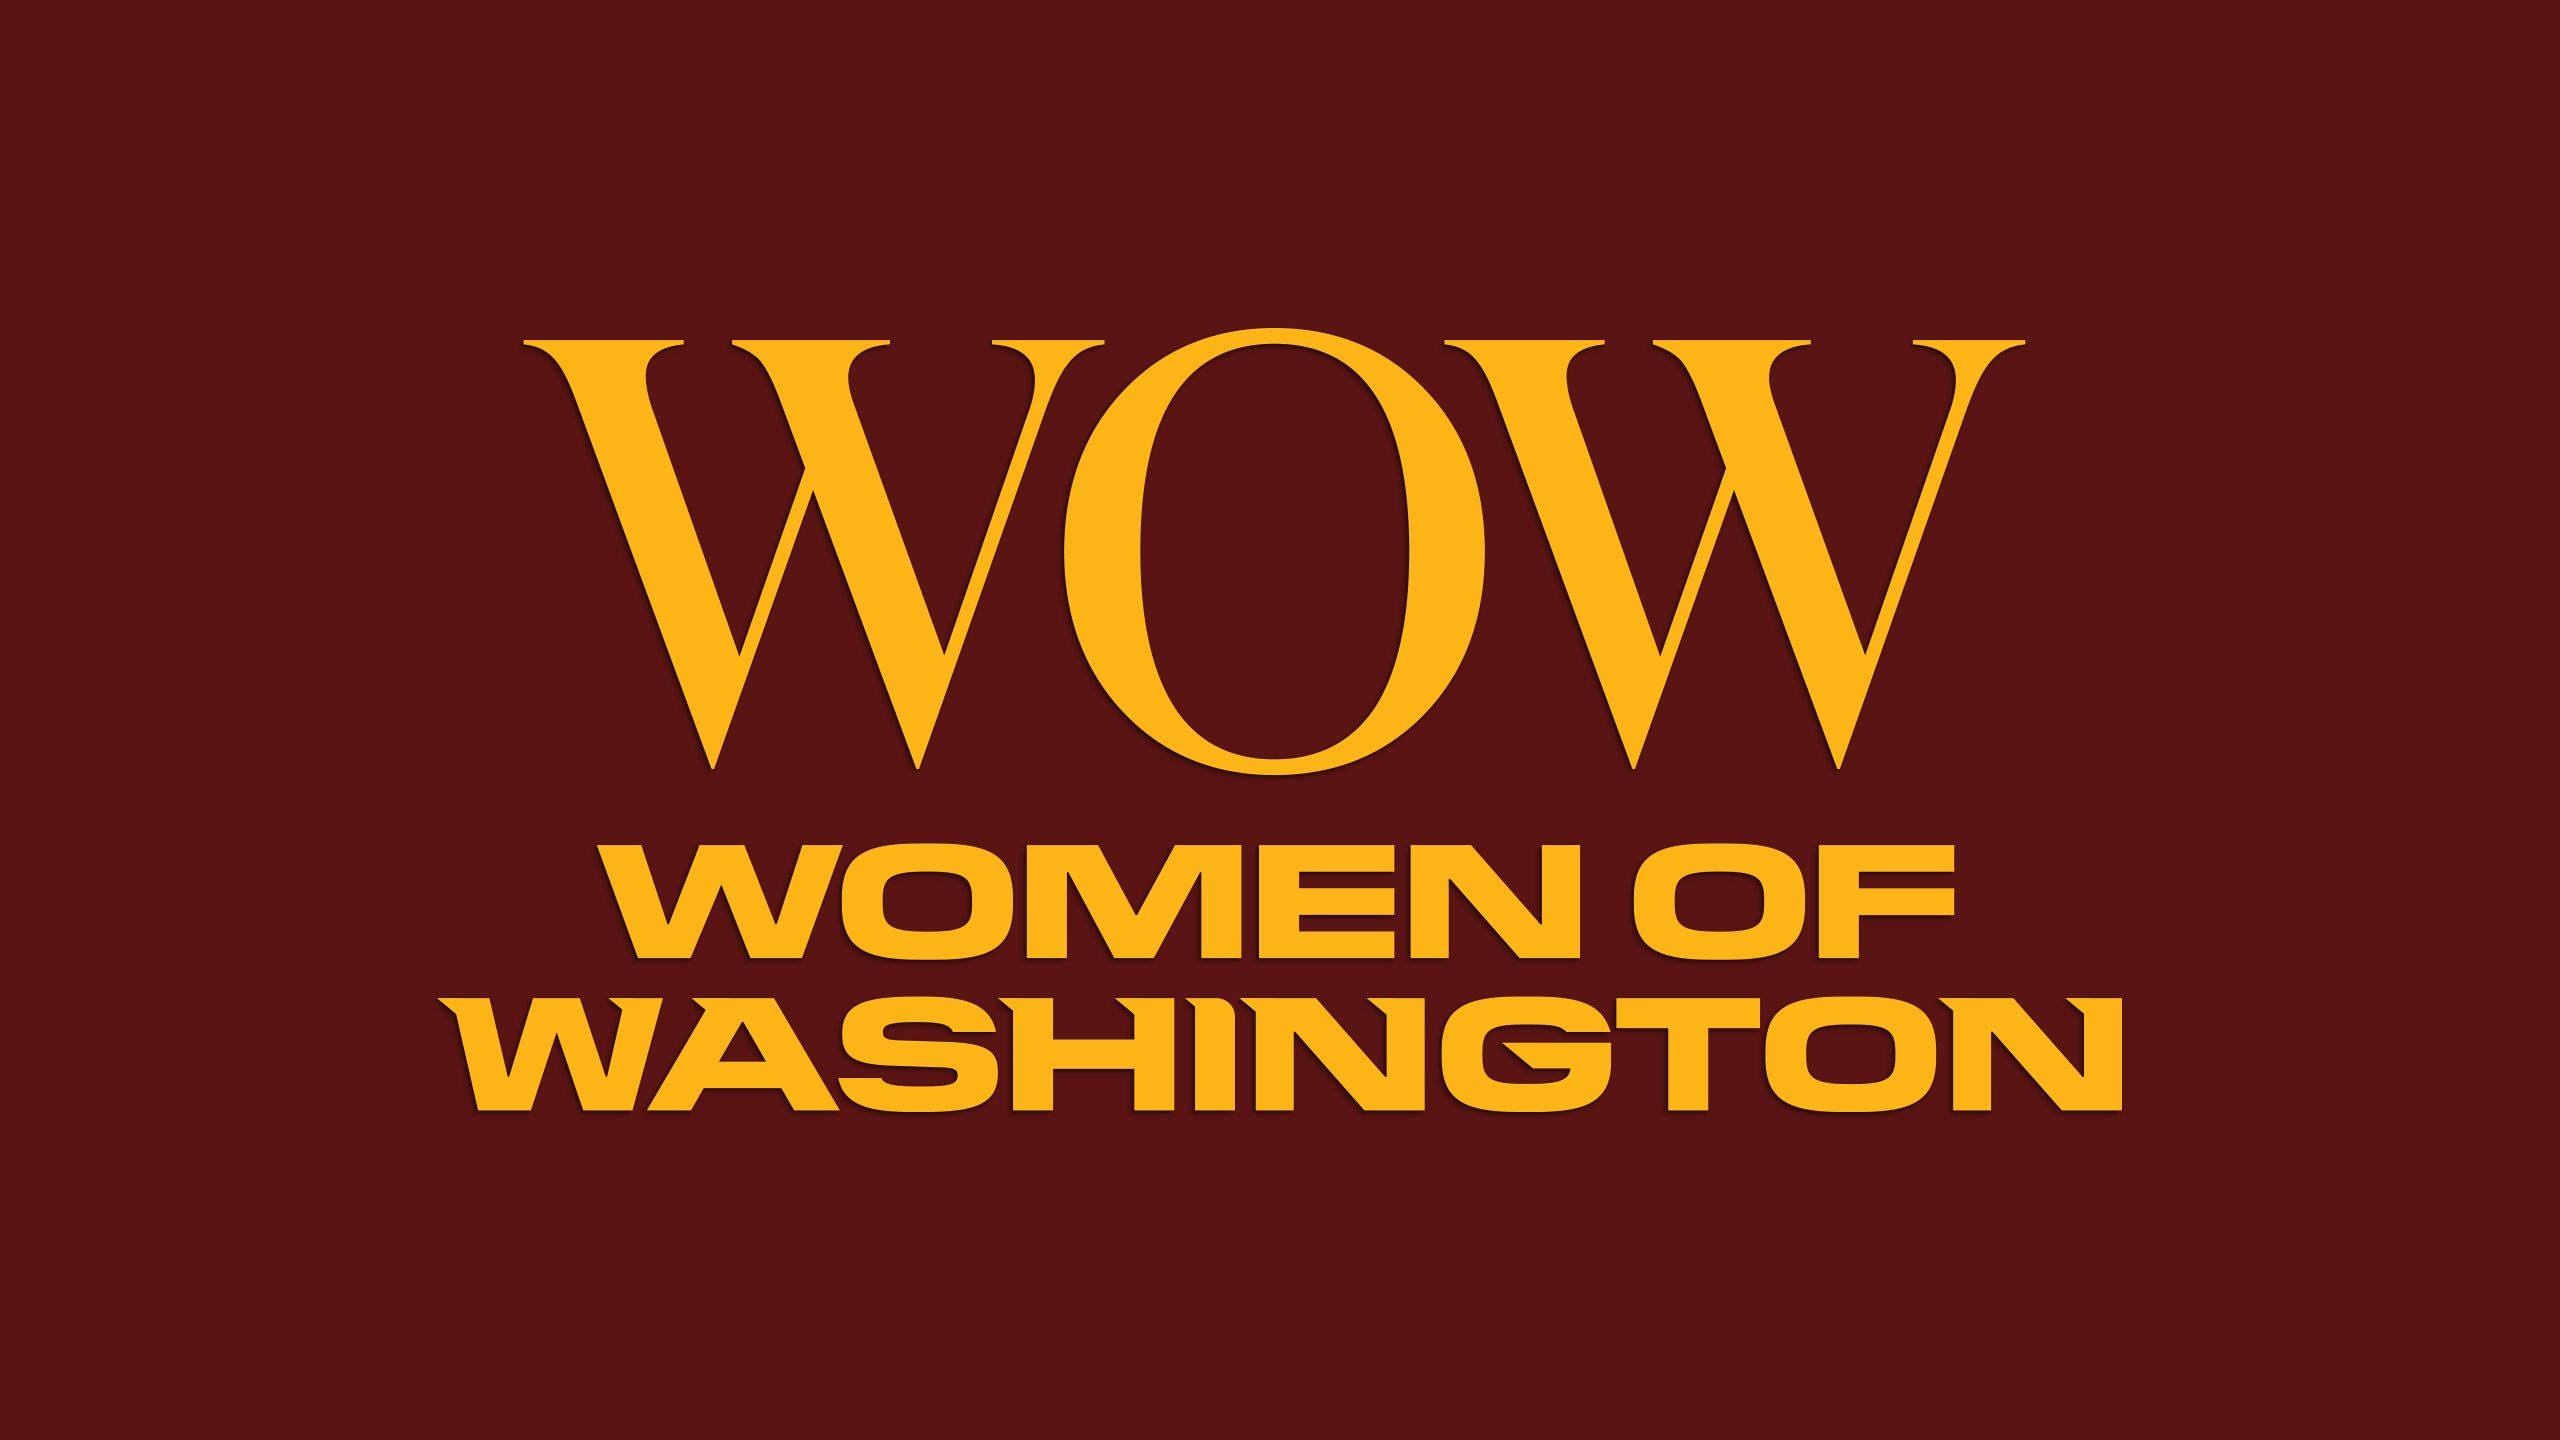 The Women of Washington